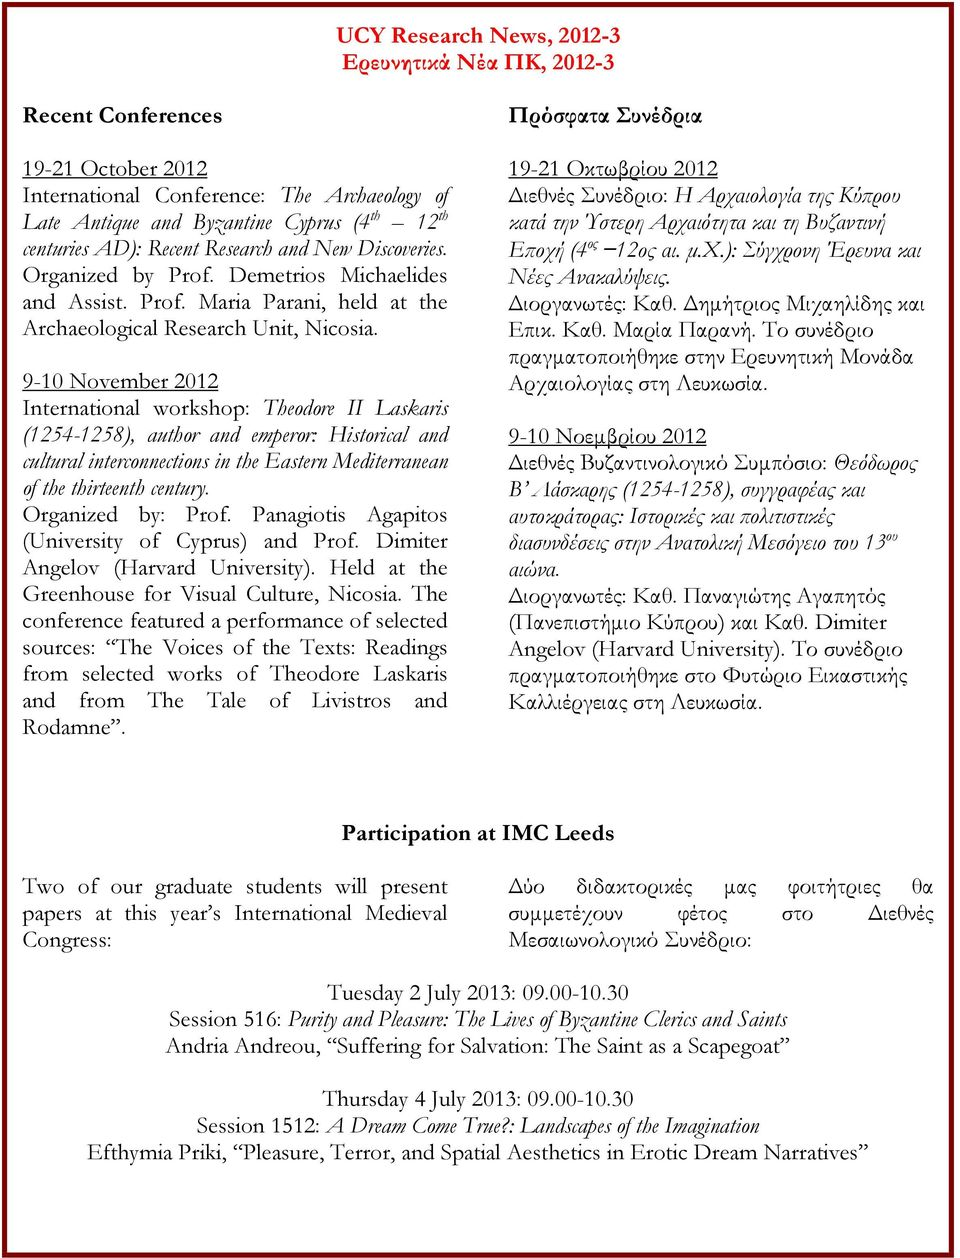 9-10 November 2012 International workshop: Theodore II Laskaris (1254-1258), author and emperor: Historical and cultural interconnections in the Eastern Mediterranean of the thirteenth century.